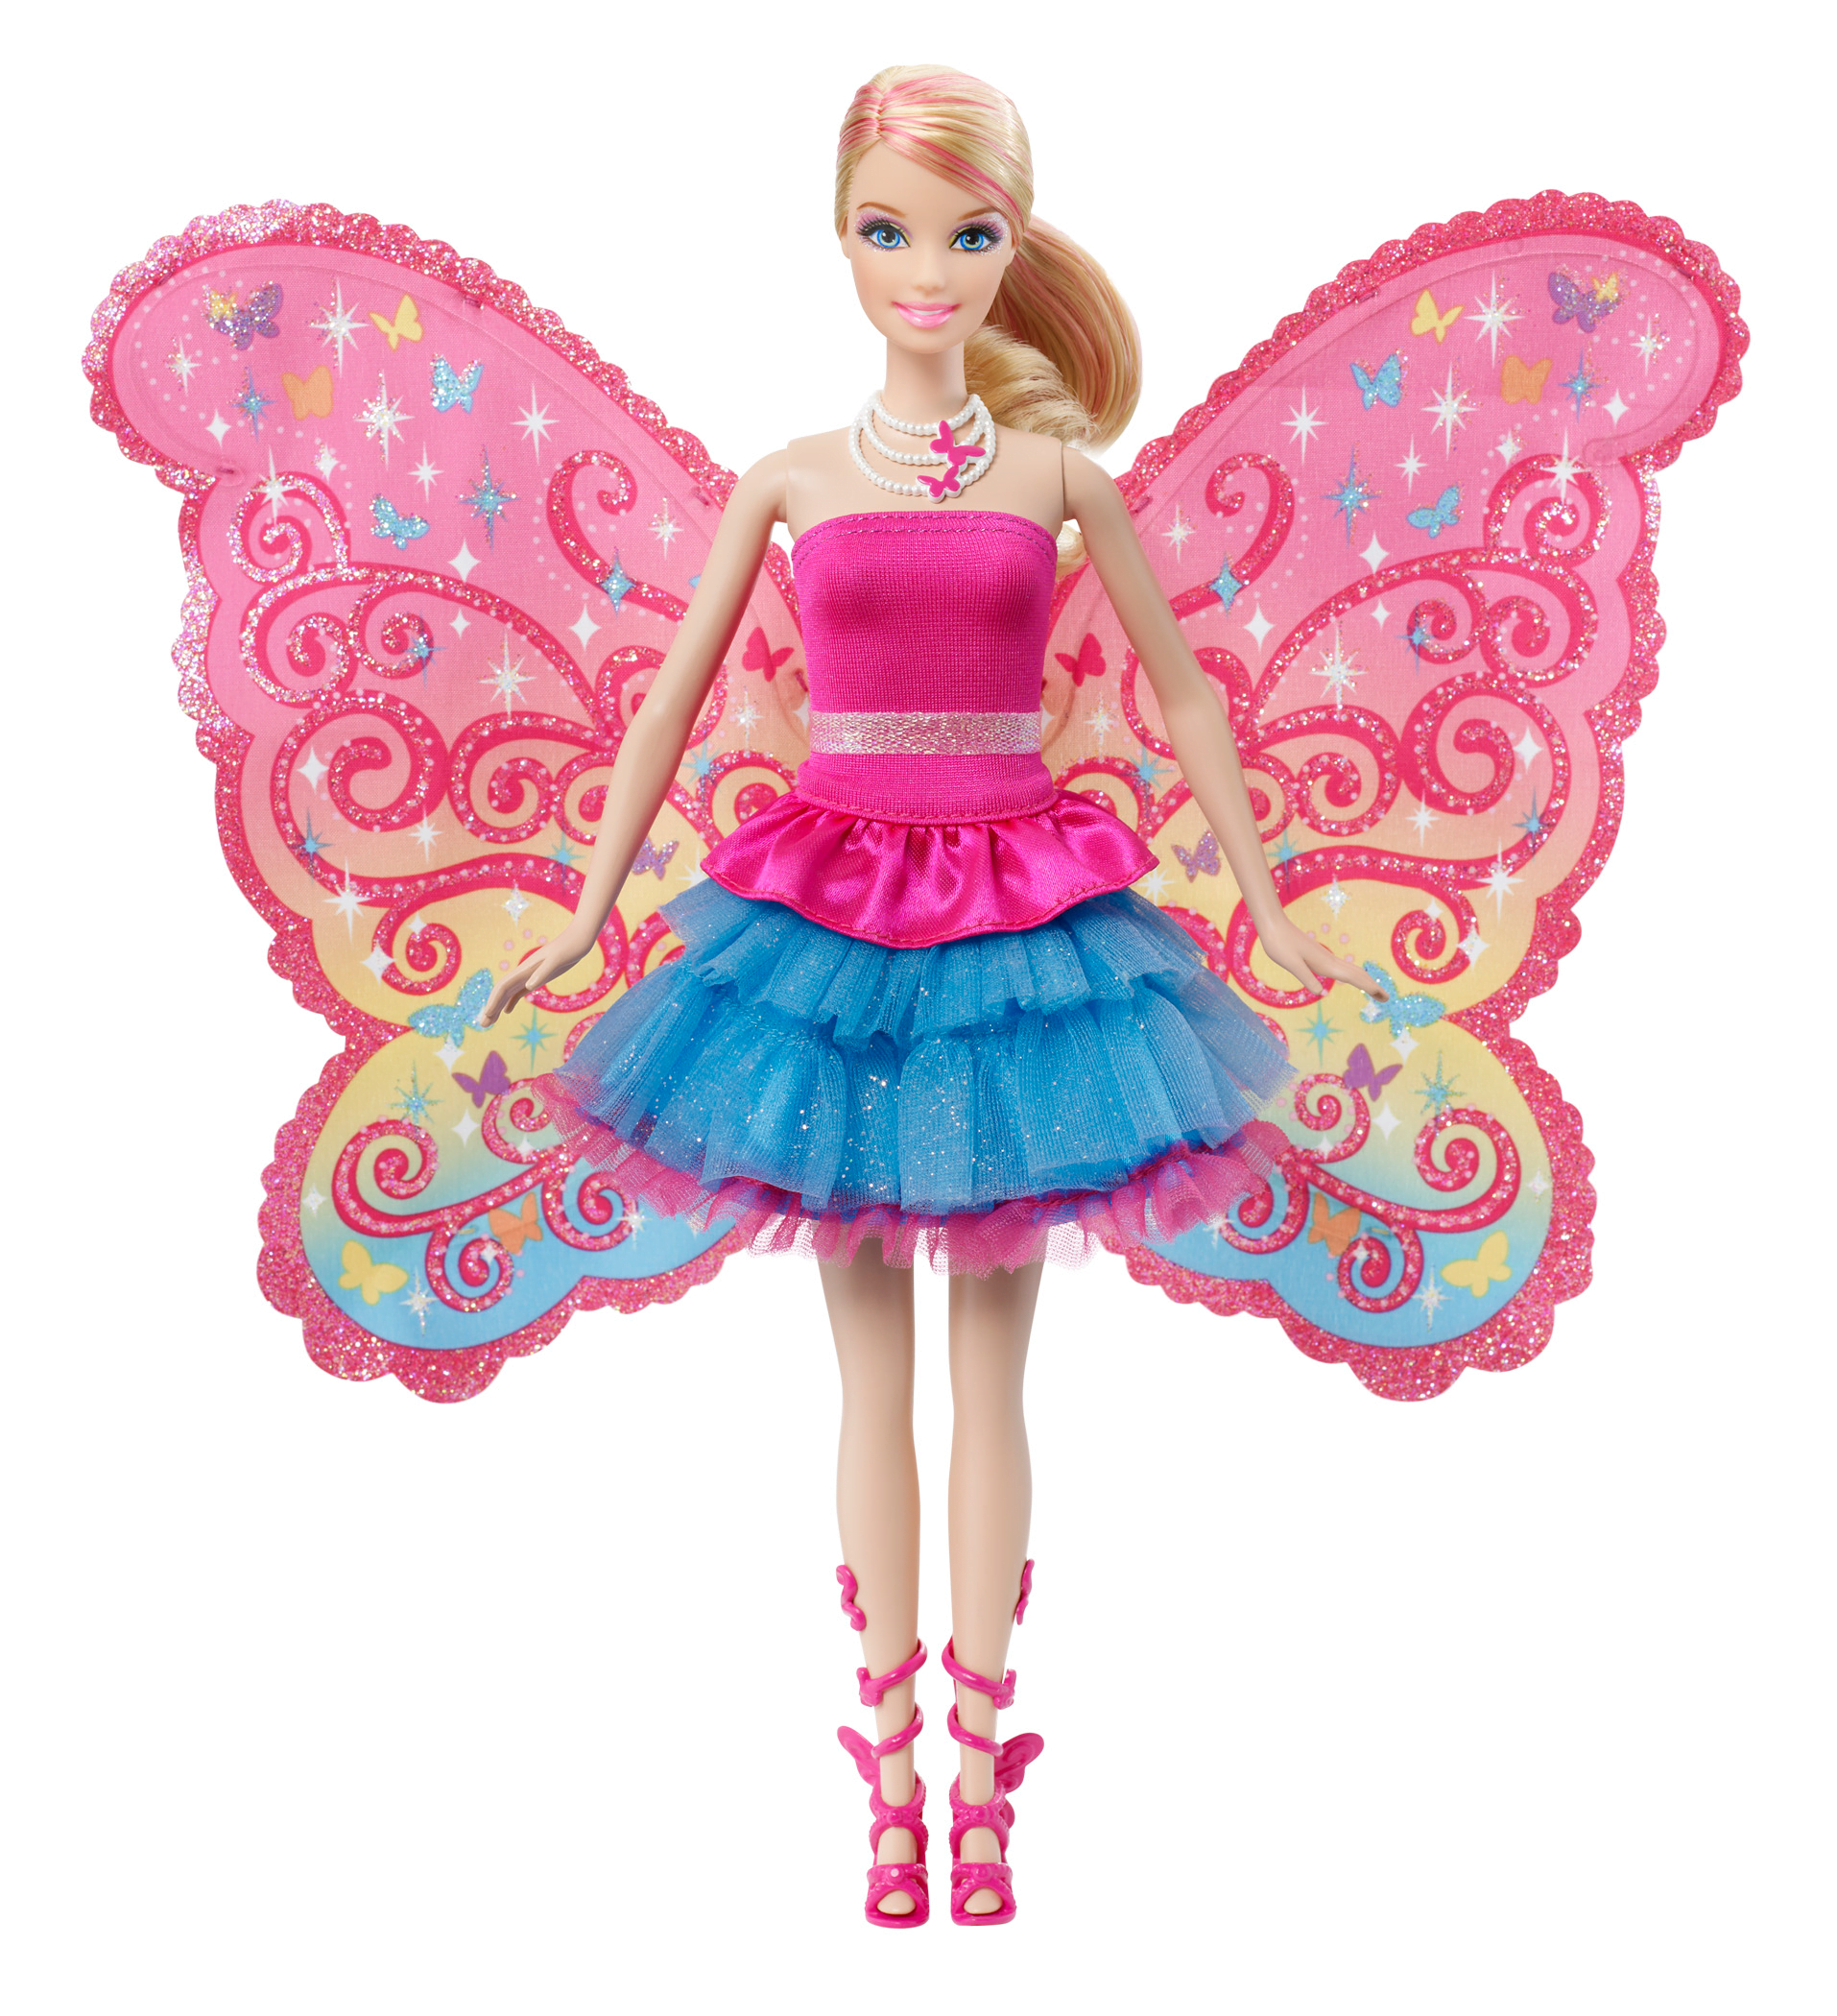 Barbie_A_Fairy_Secret_Barbie_Doll_Transformed